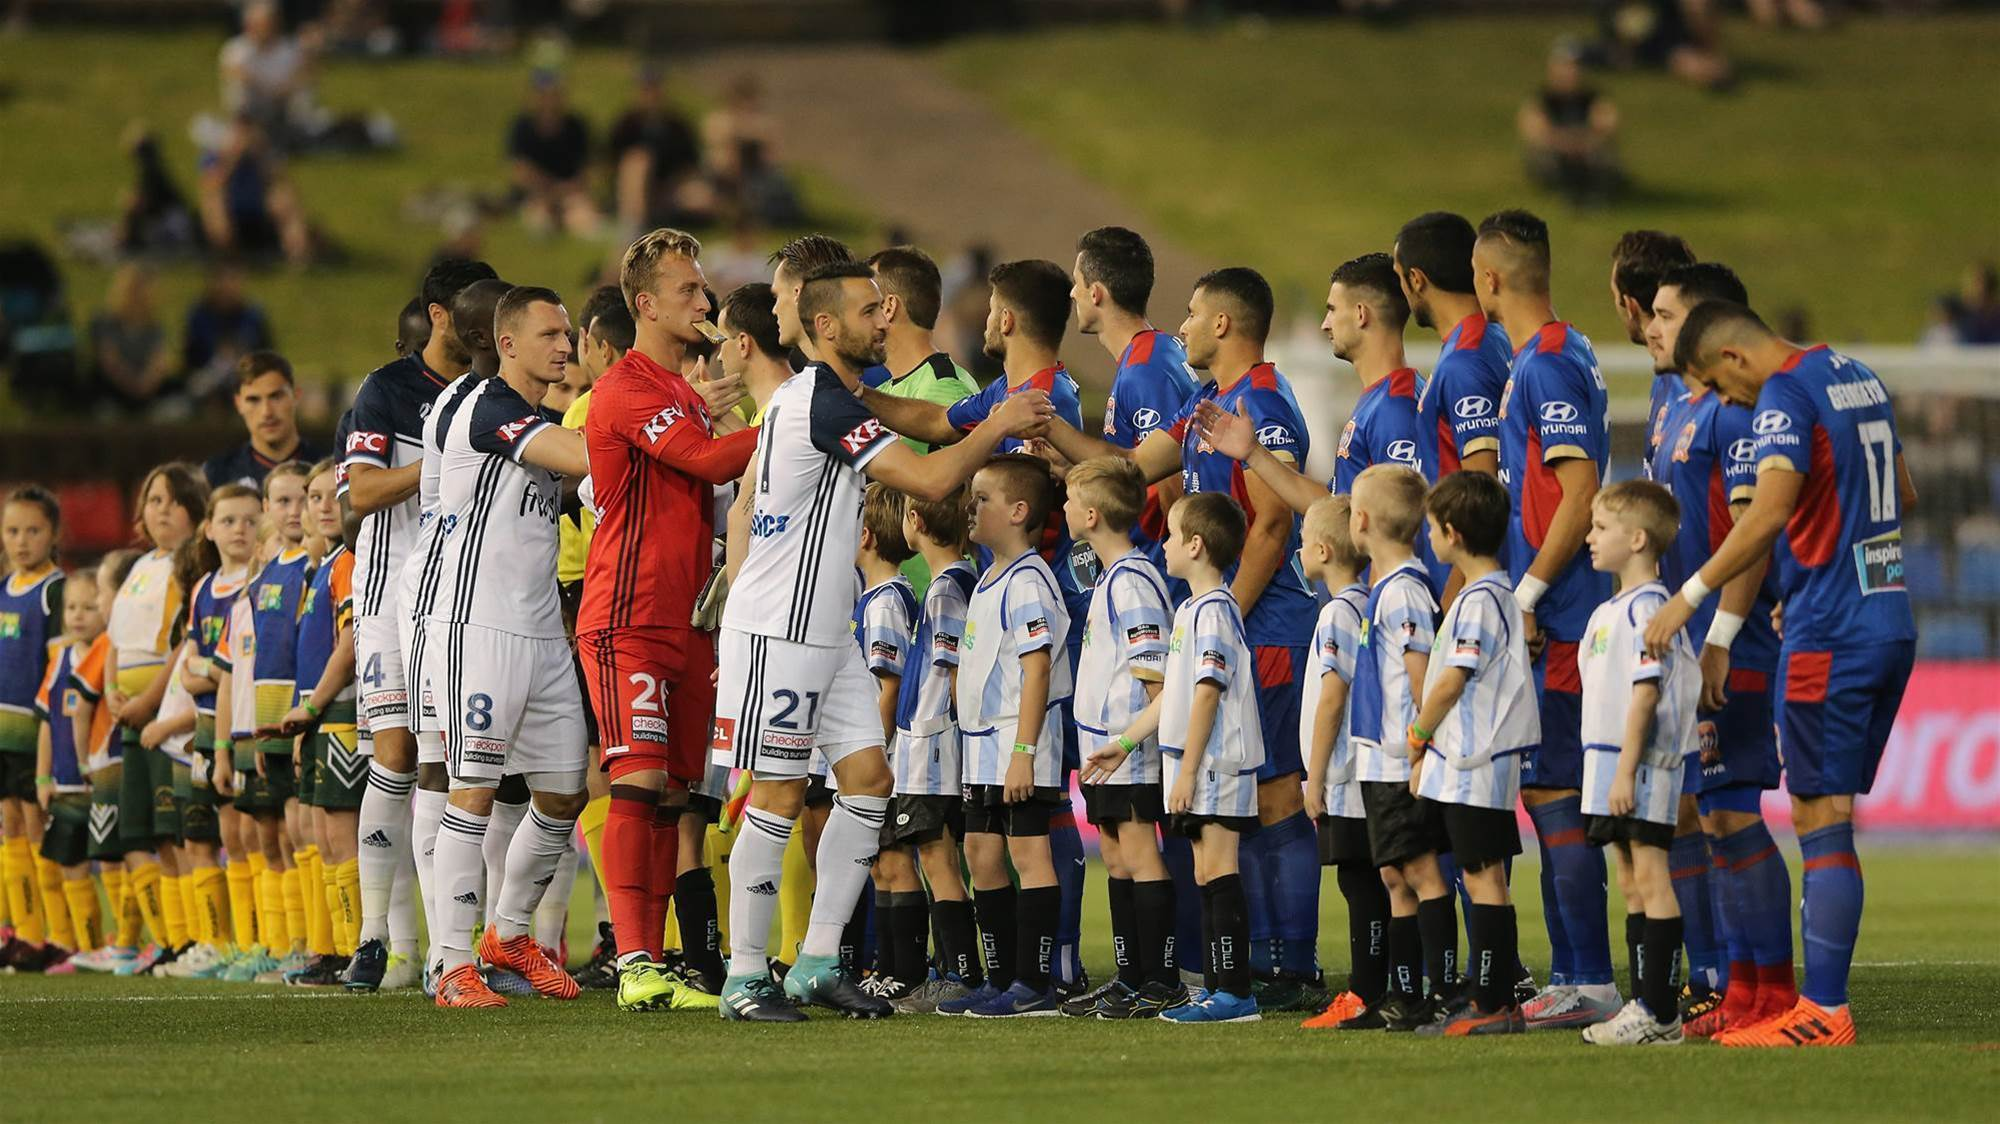 Another ball kid controversy for A-league